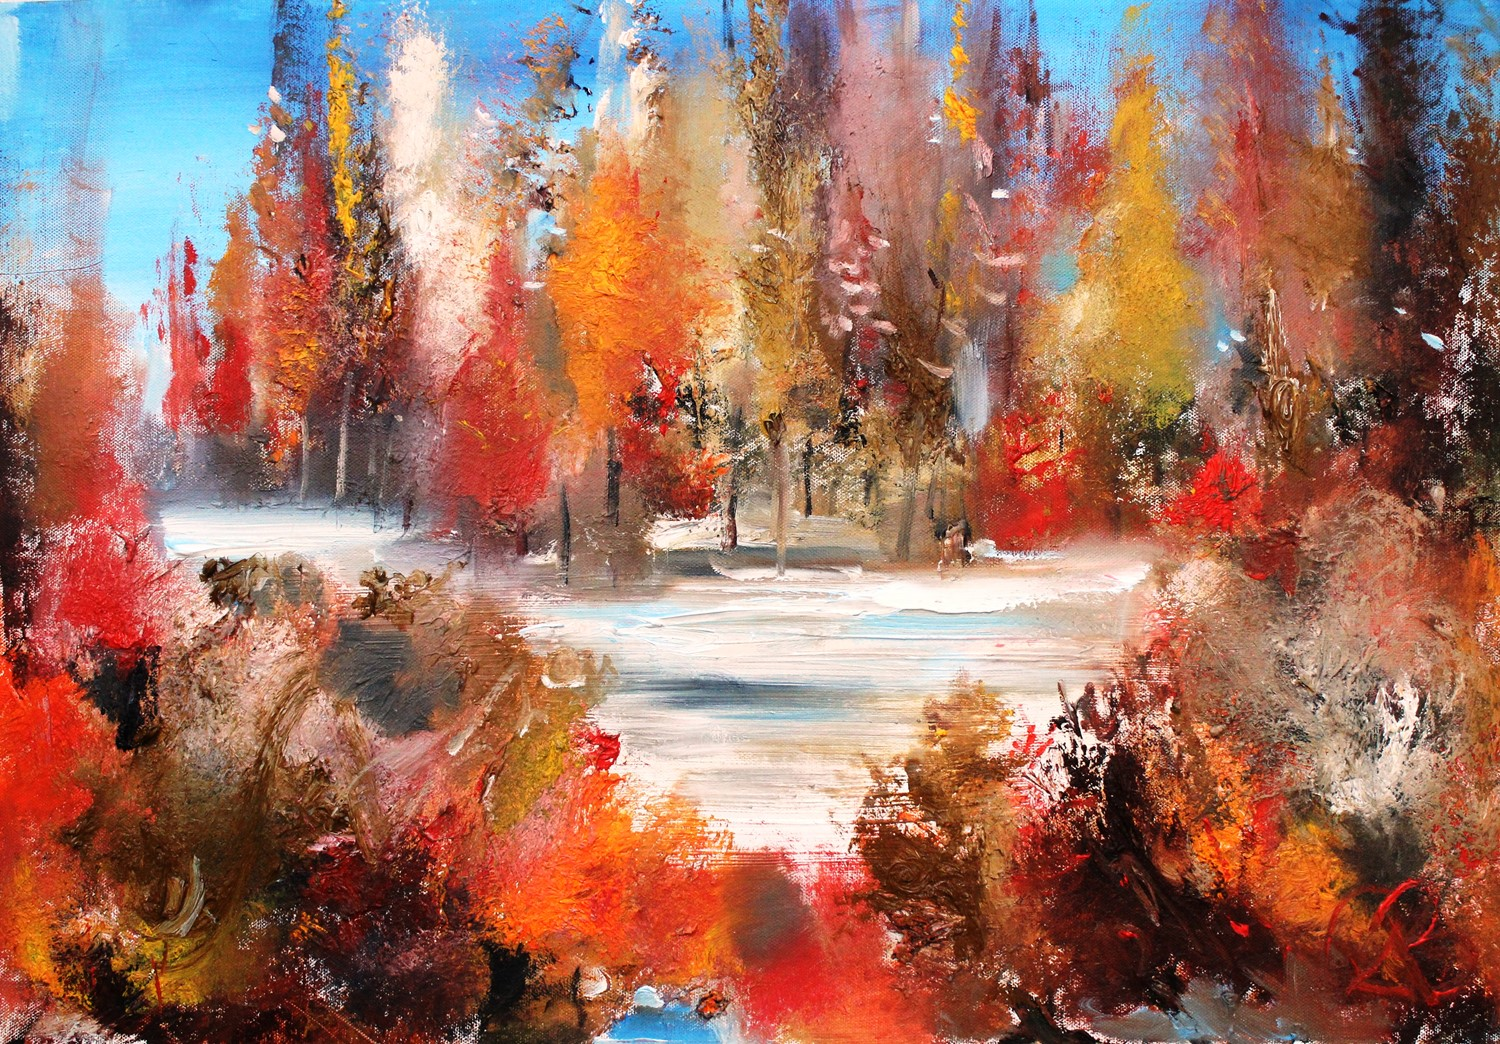 'Autumn Colour' by artist Rosanne Barr